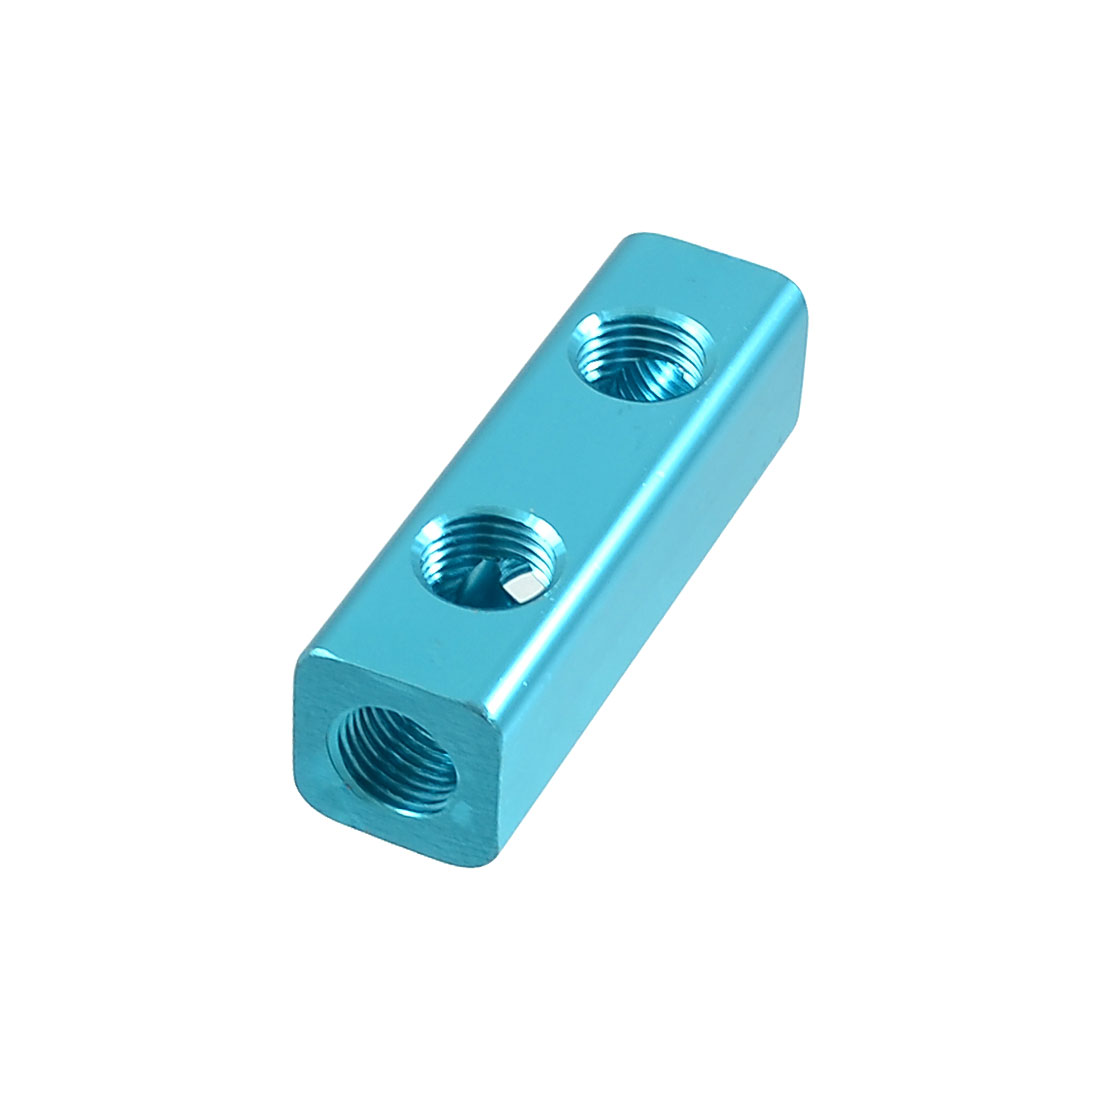 12mm Female Thread Dia 2 In 3 Out Air Inline Manifold Splitter Block Teal Blue